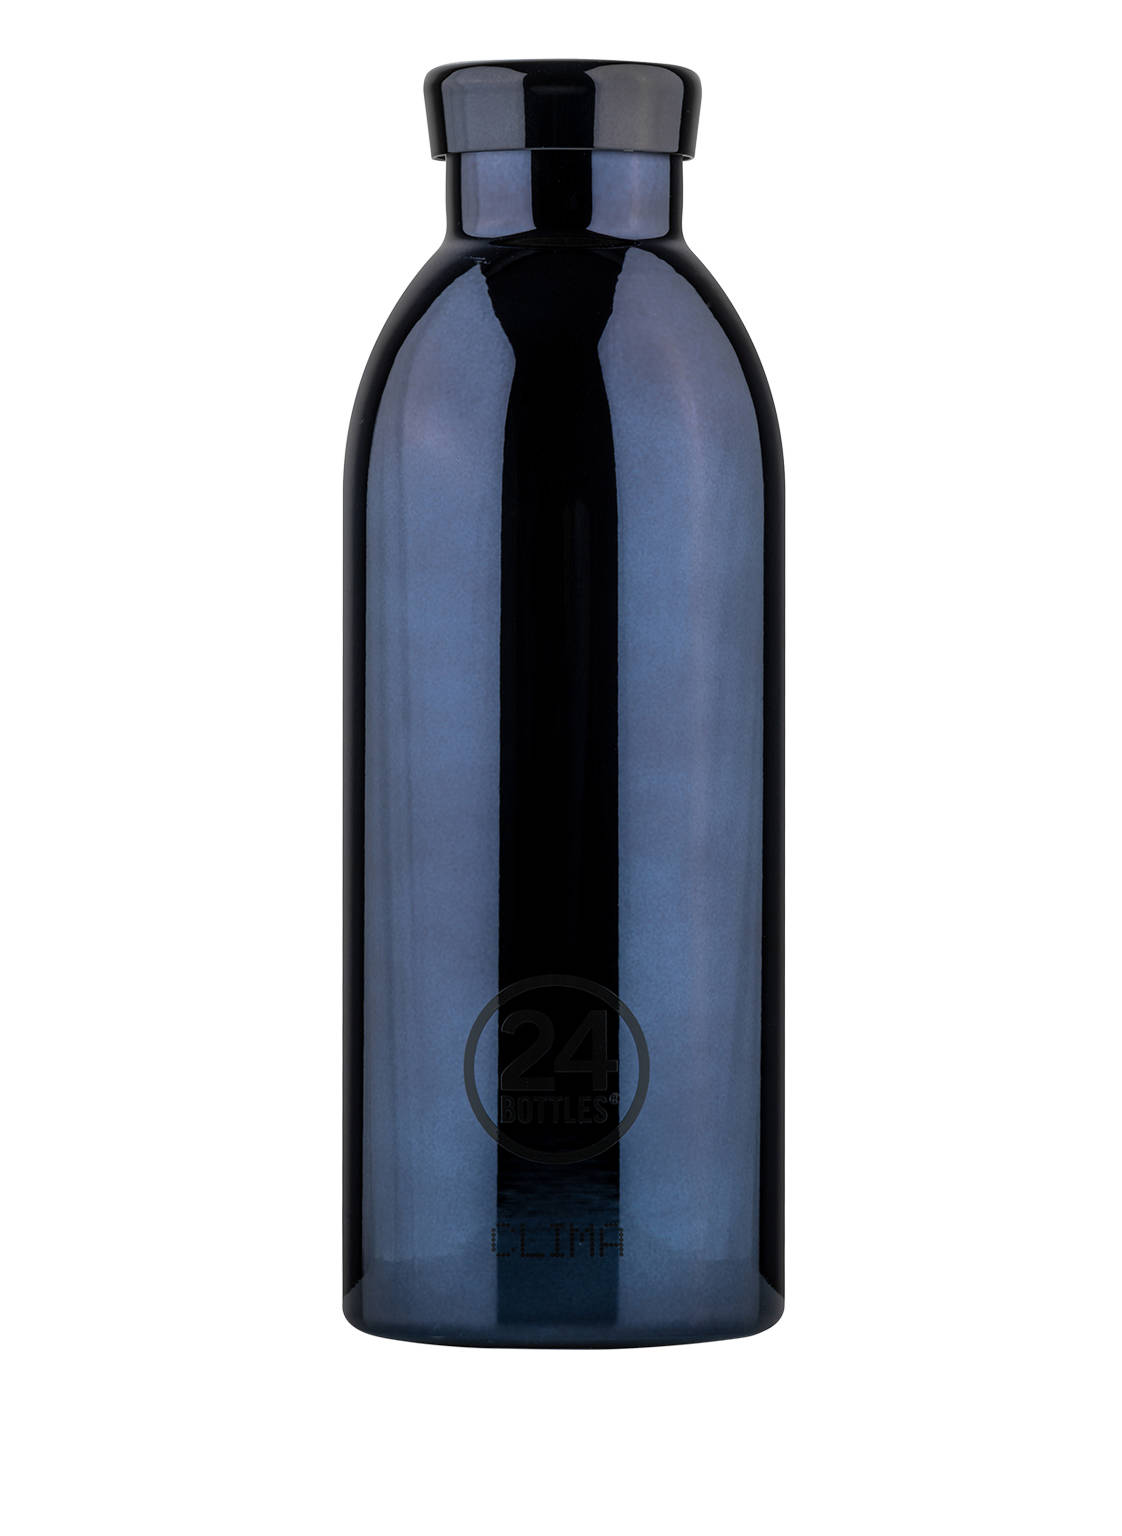 Image of 24bottles Isolierflasche Clima blau